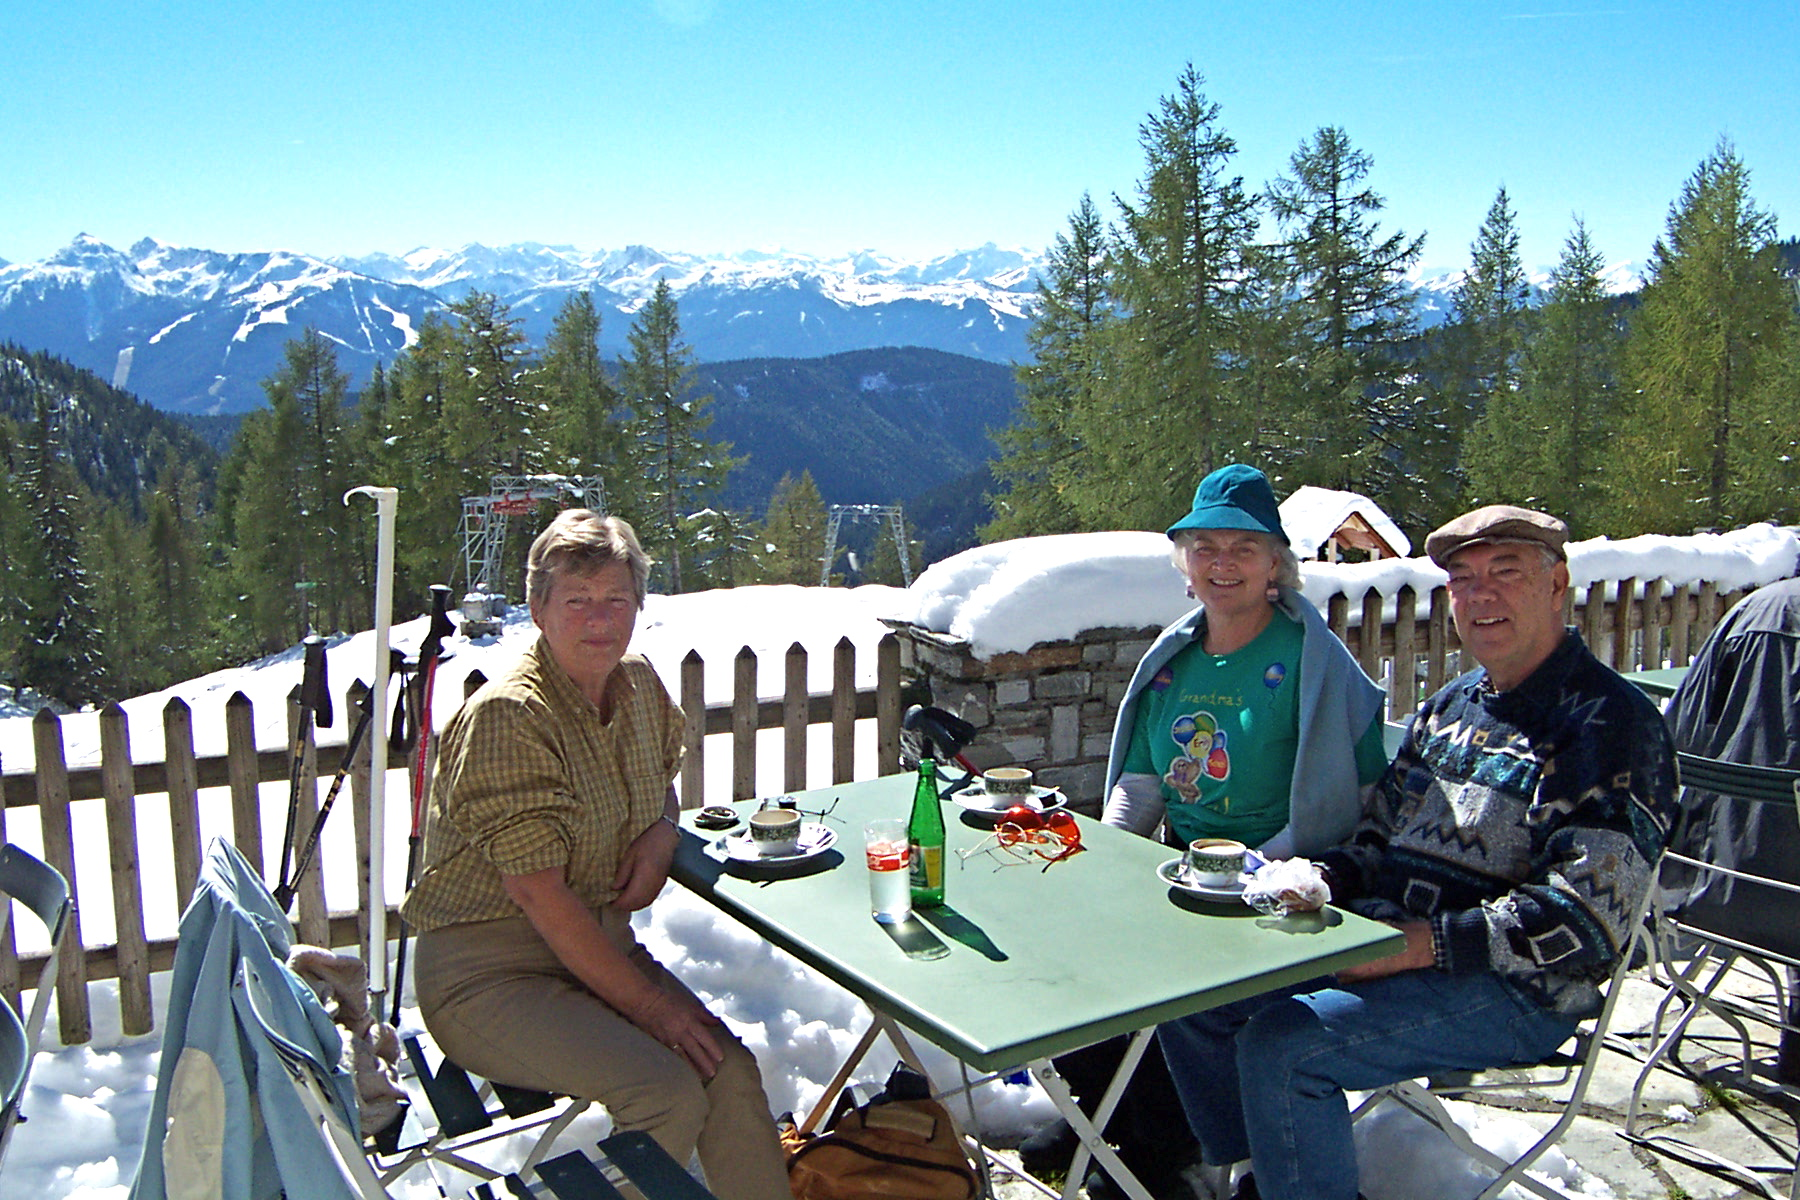 After a 45 minute hike up a trail above a sheer cliff, the van Geets and Boyds had lunch in Austria.